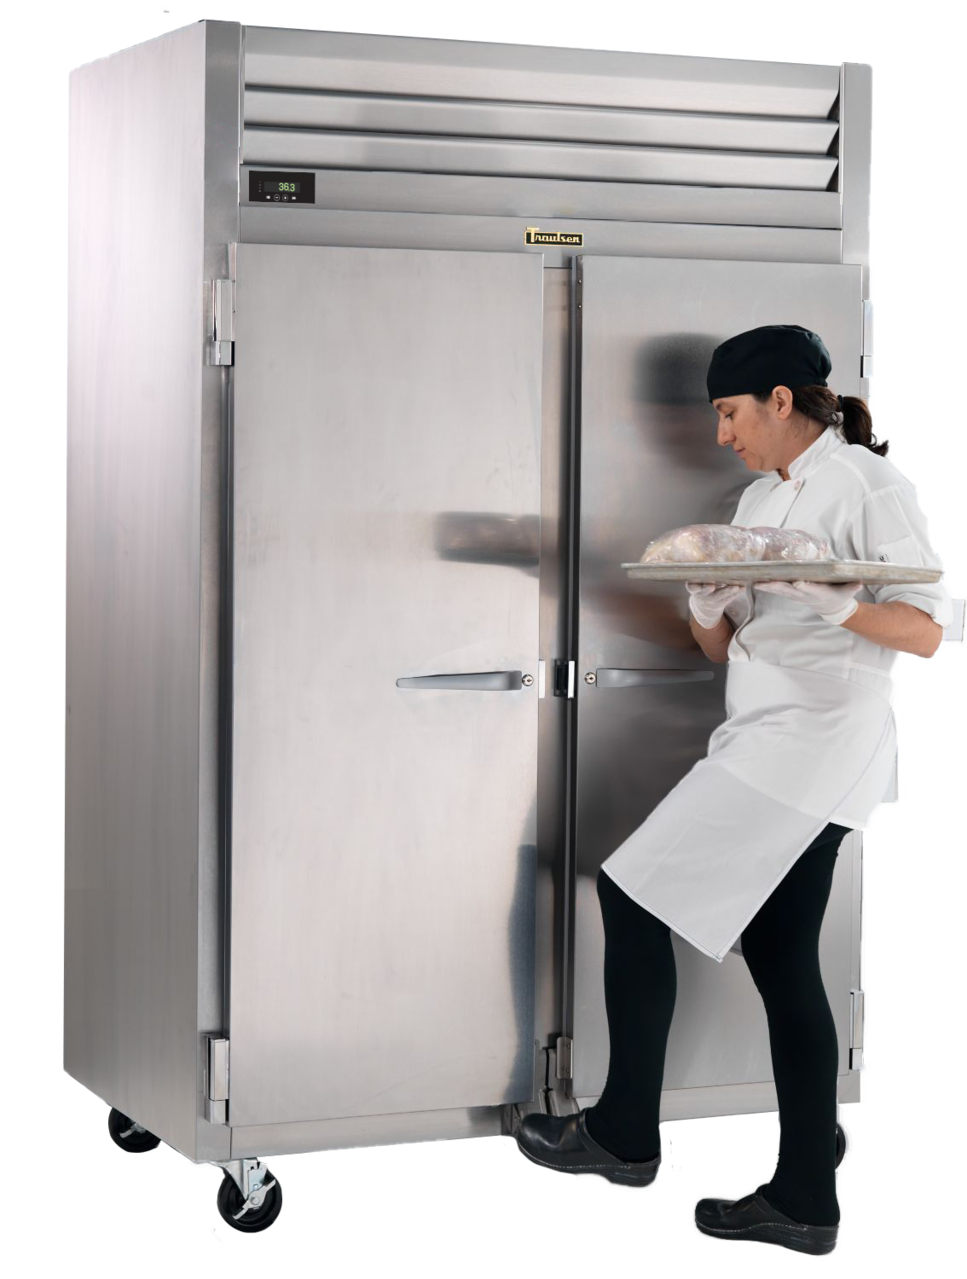 EZ-Open Foot Pedal In Use by Foodservice Operator